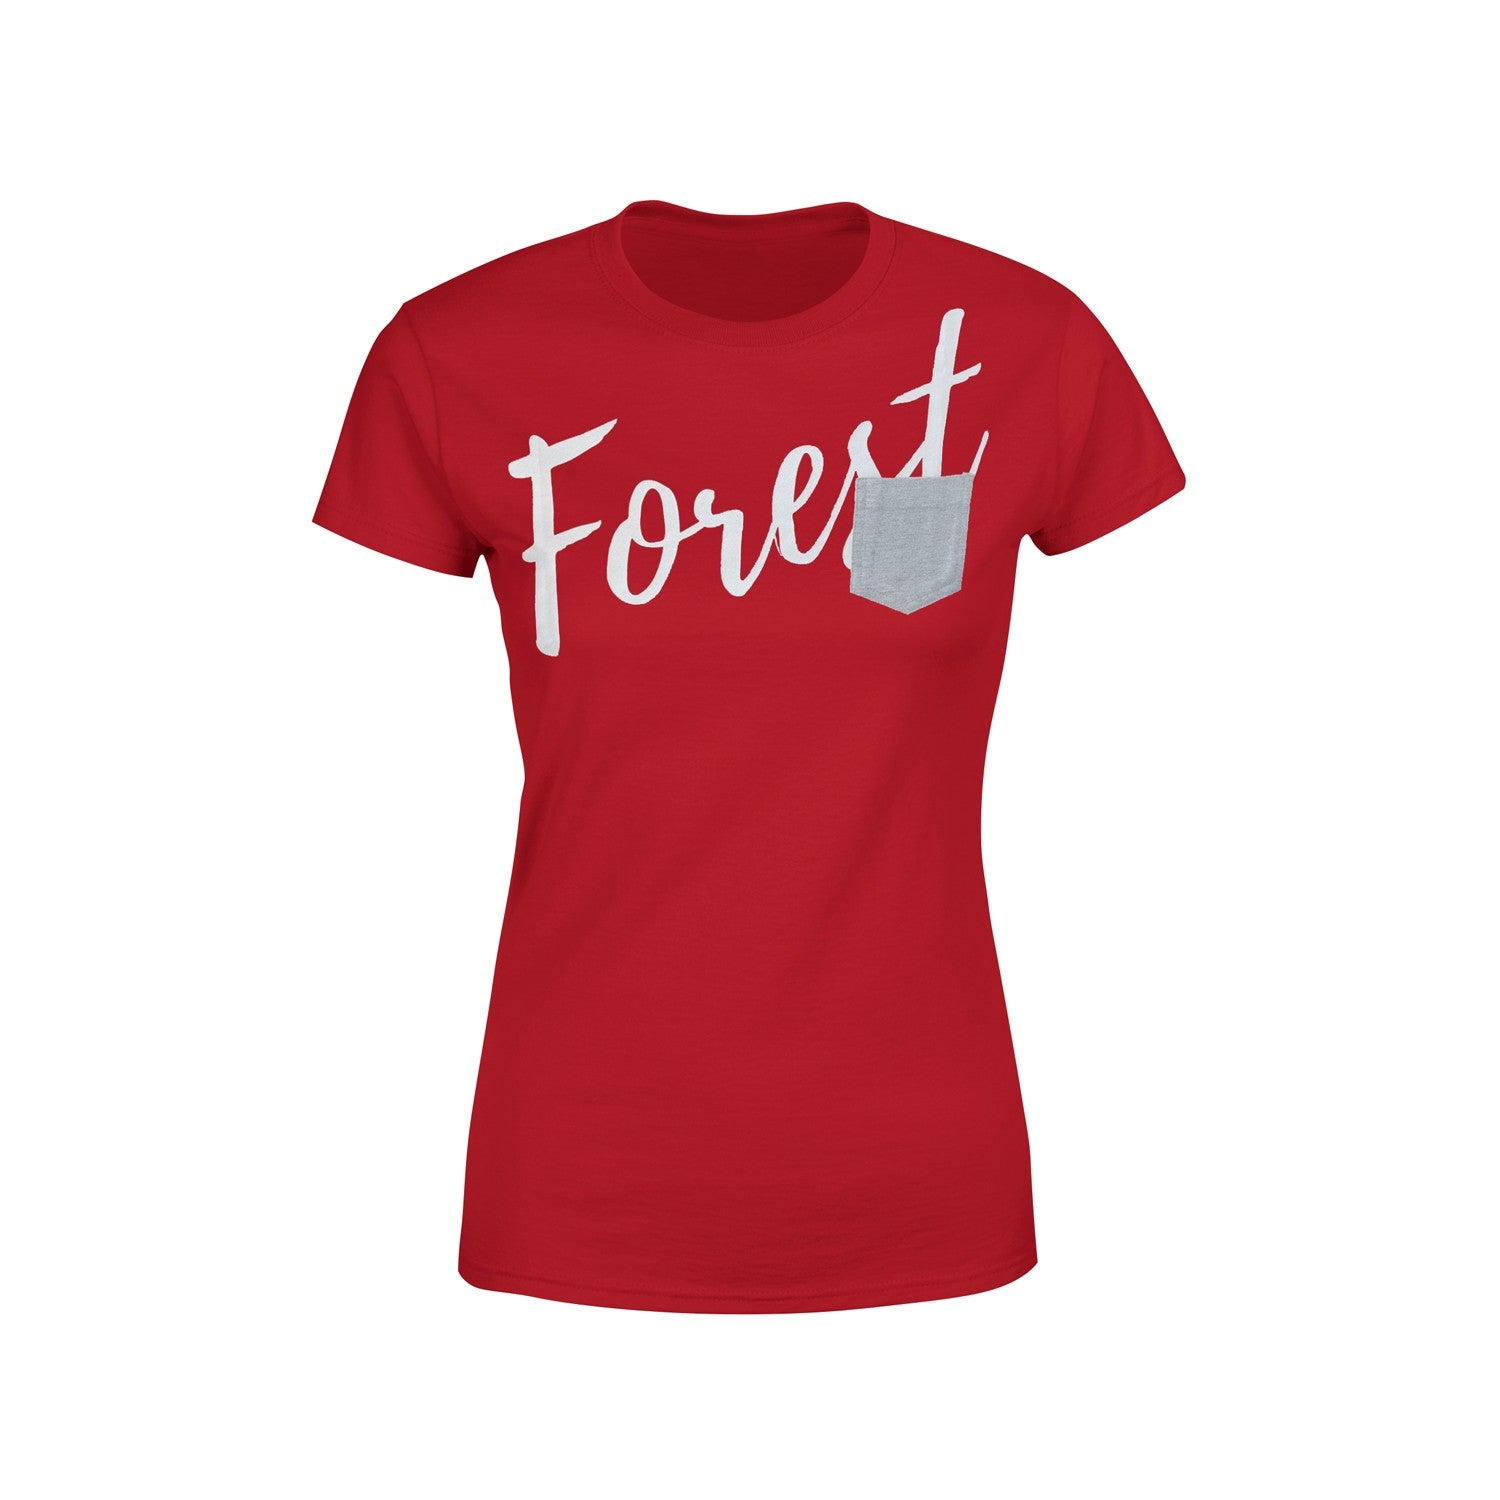 NFFC Womens Red Pocket T-Shirt